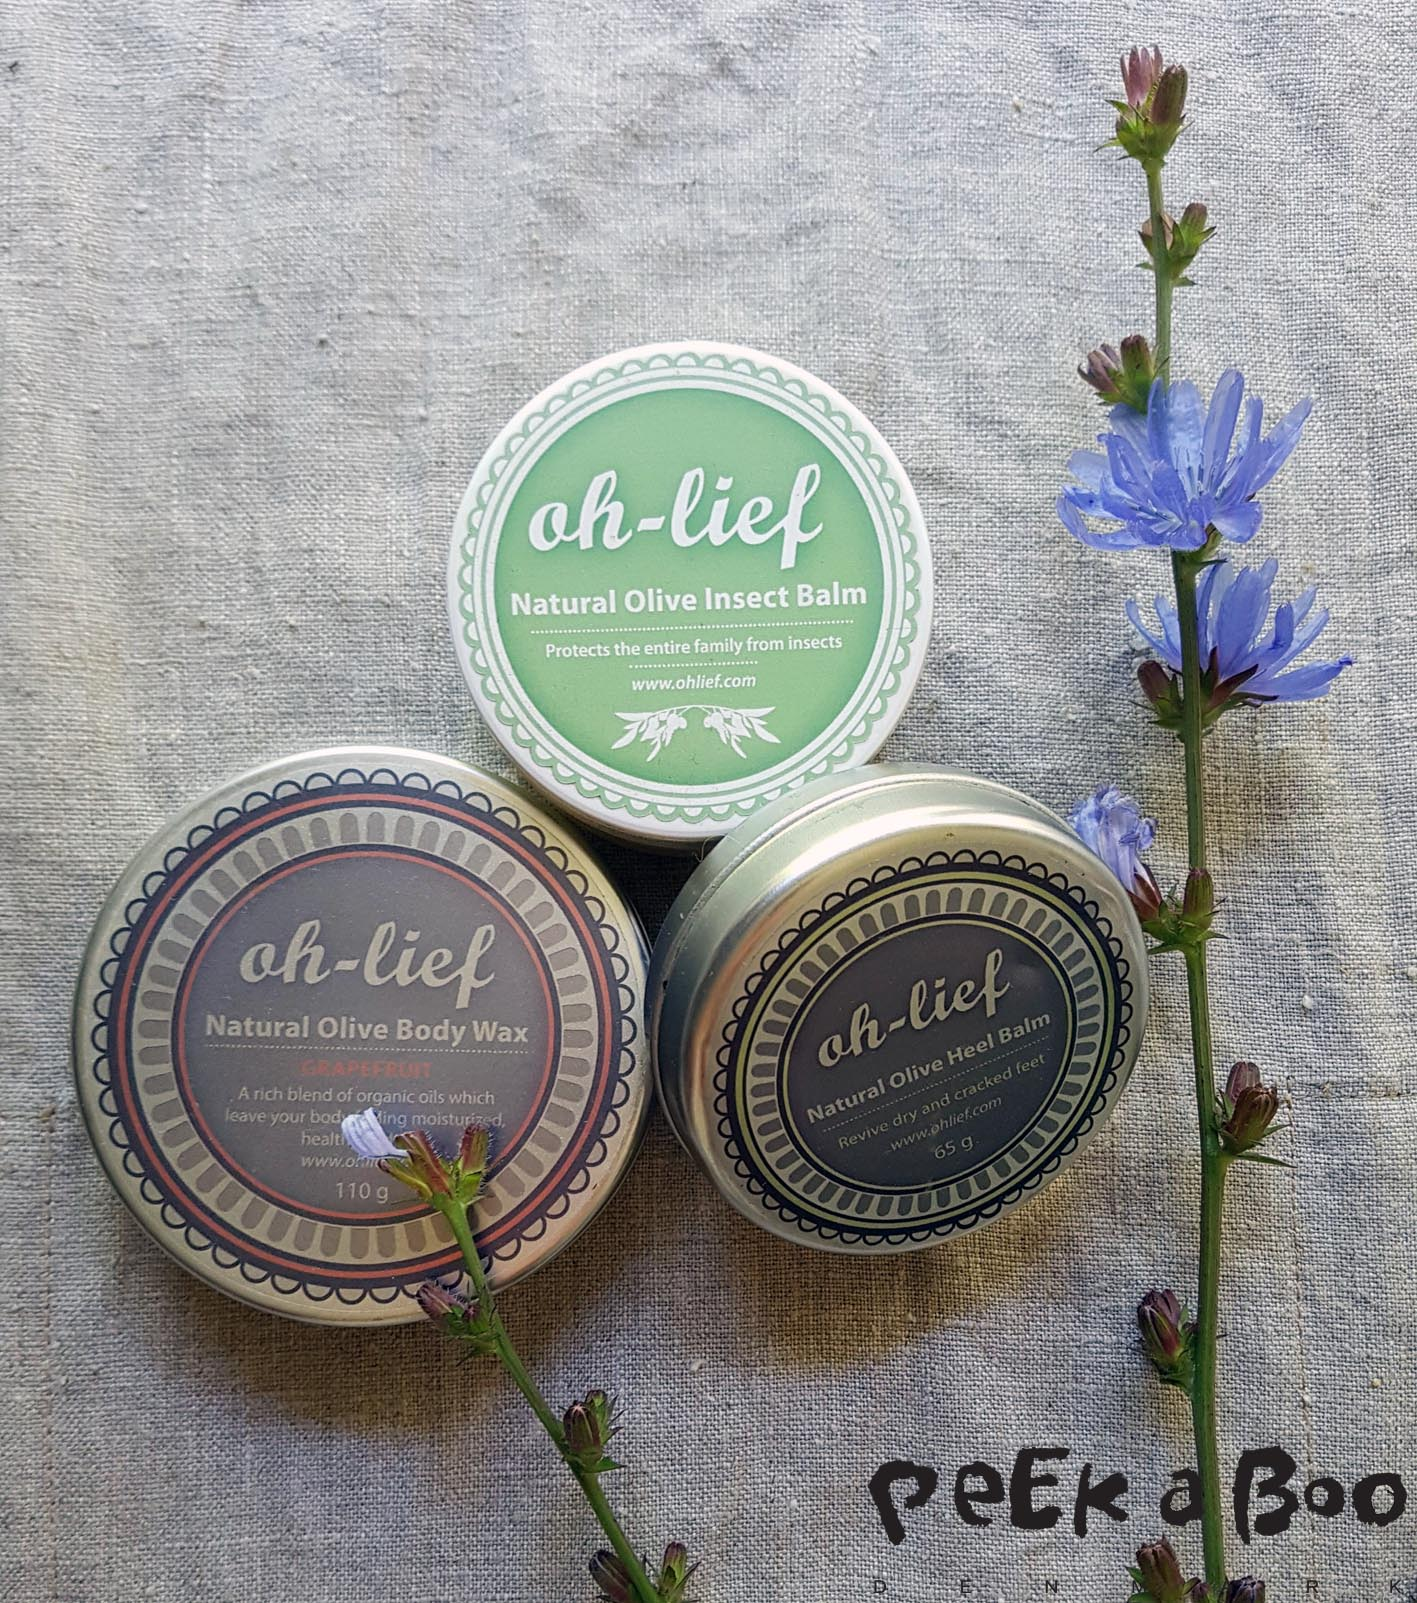 Oh lief body balm, heel balm and Anti insect balm.